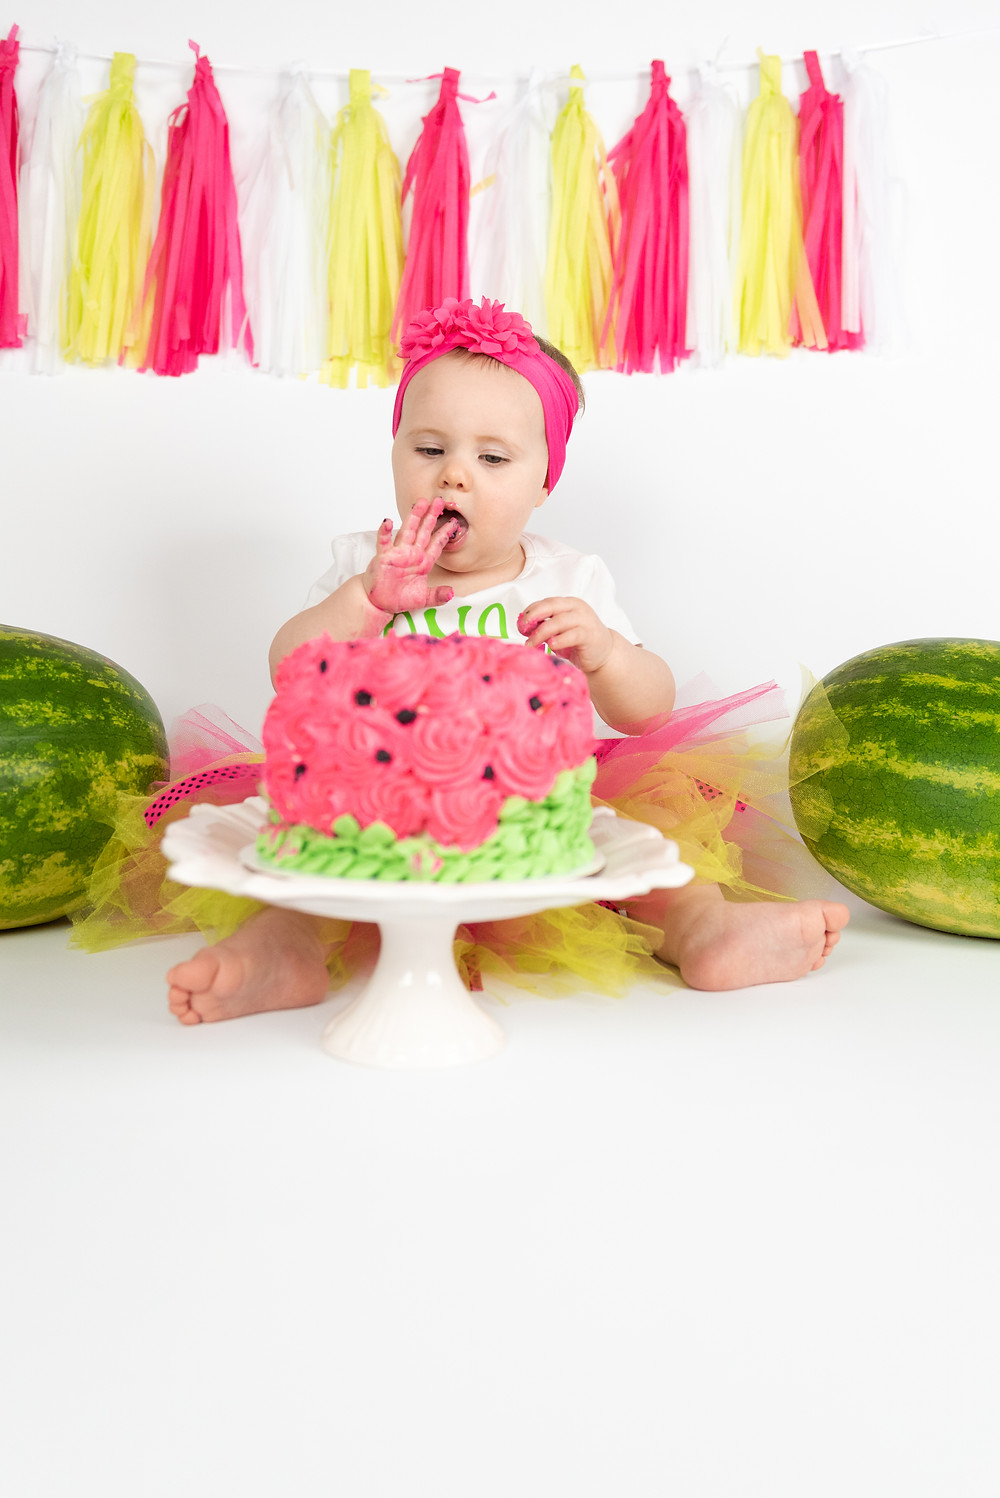 Watermelon themed cake smash photo session